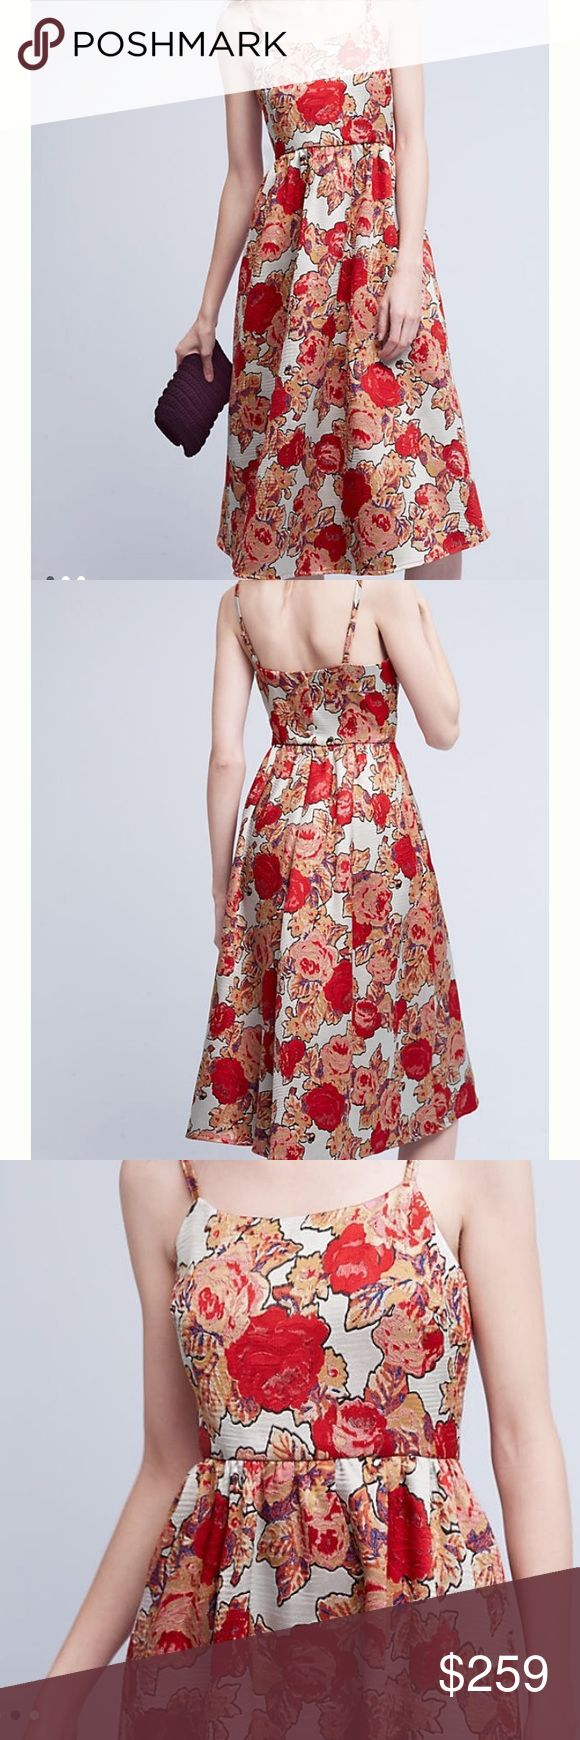 Anthropology dress size 4 sold out in this size Anthropology dress Anthropologie Dresses Maxi